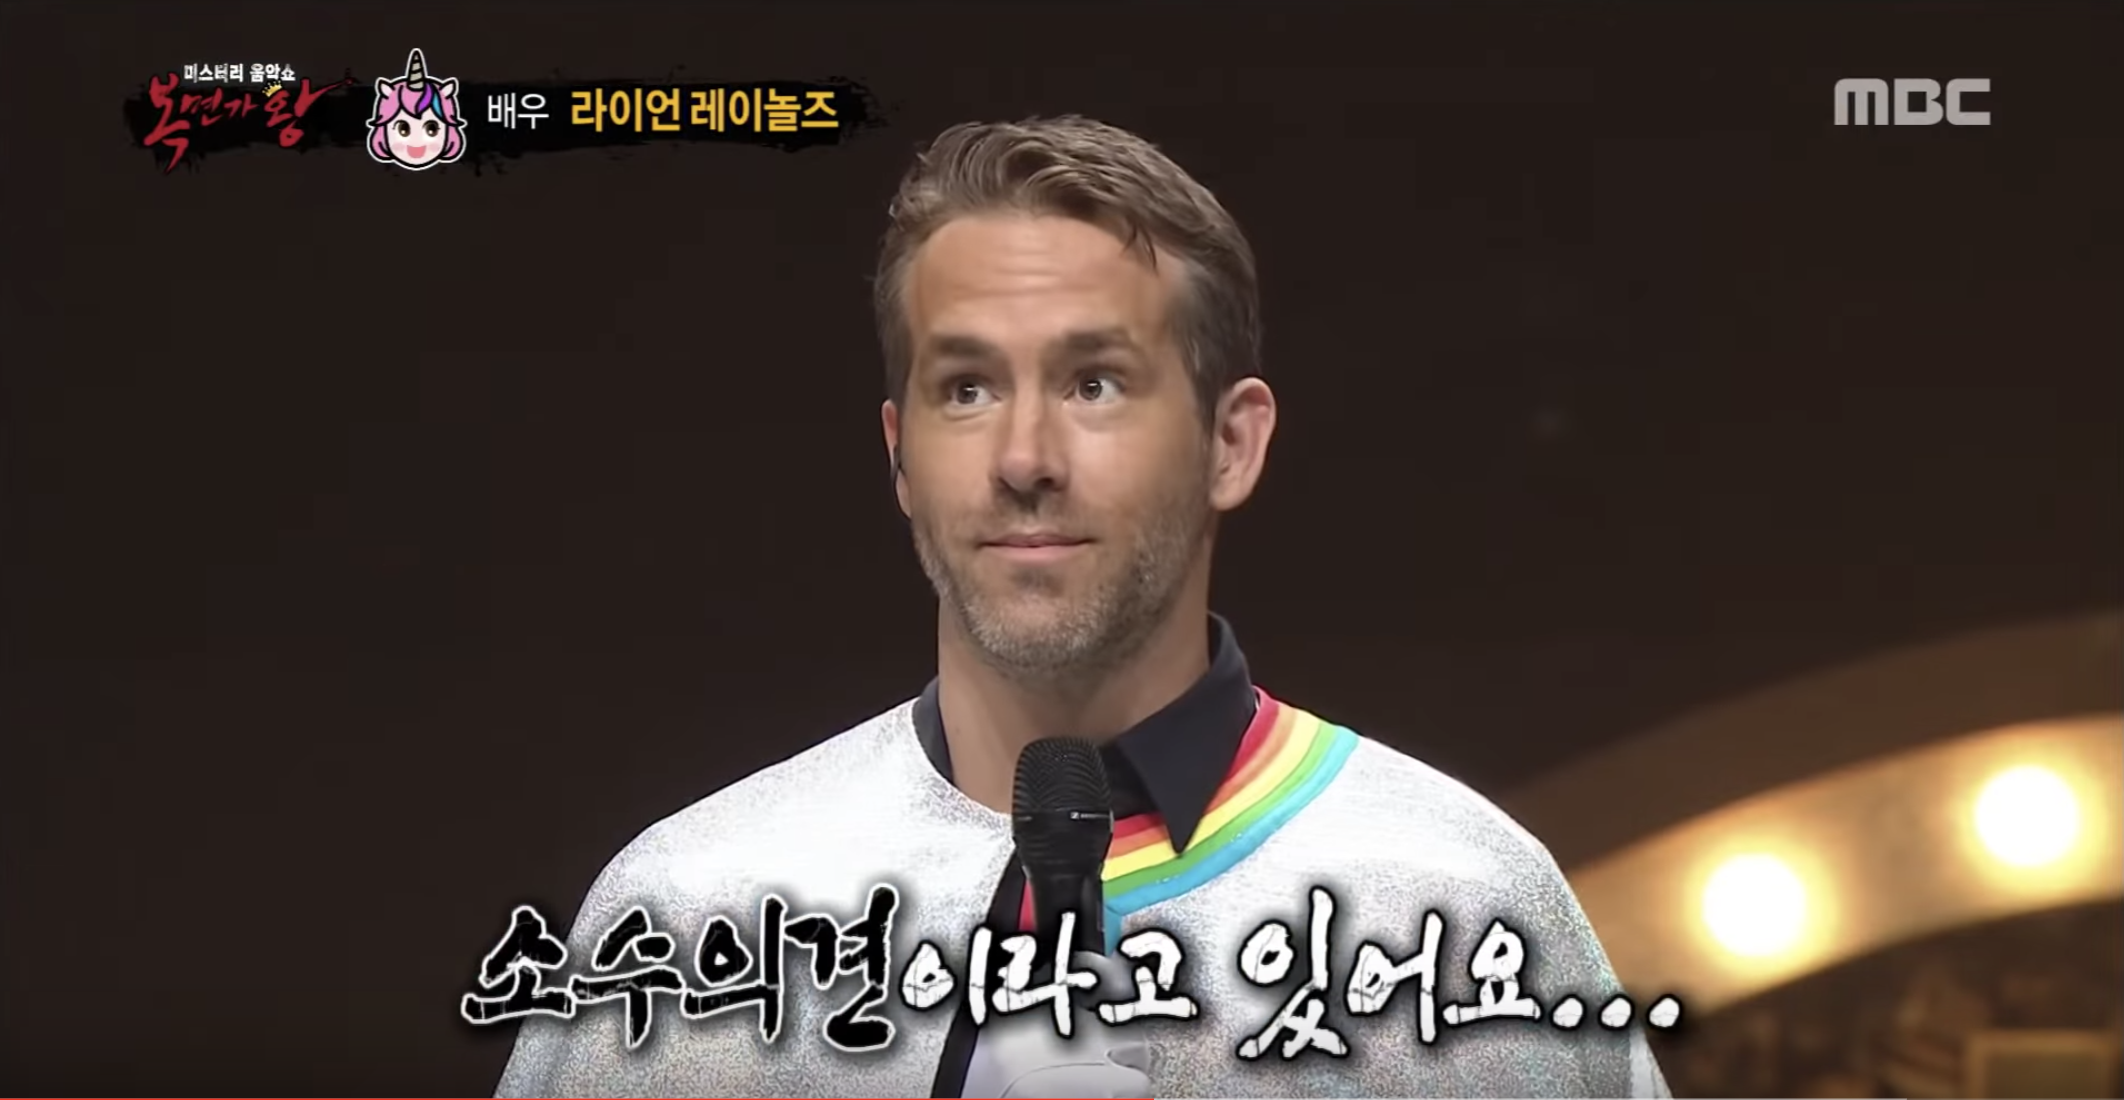 Here's Ryan Reynolds dressed as a unicorn for freakish  Korean TV appearance